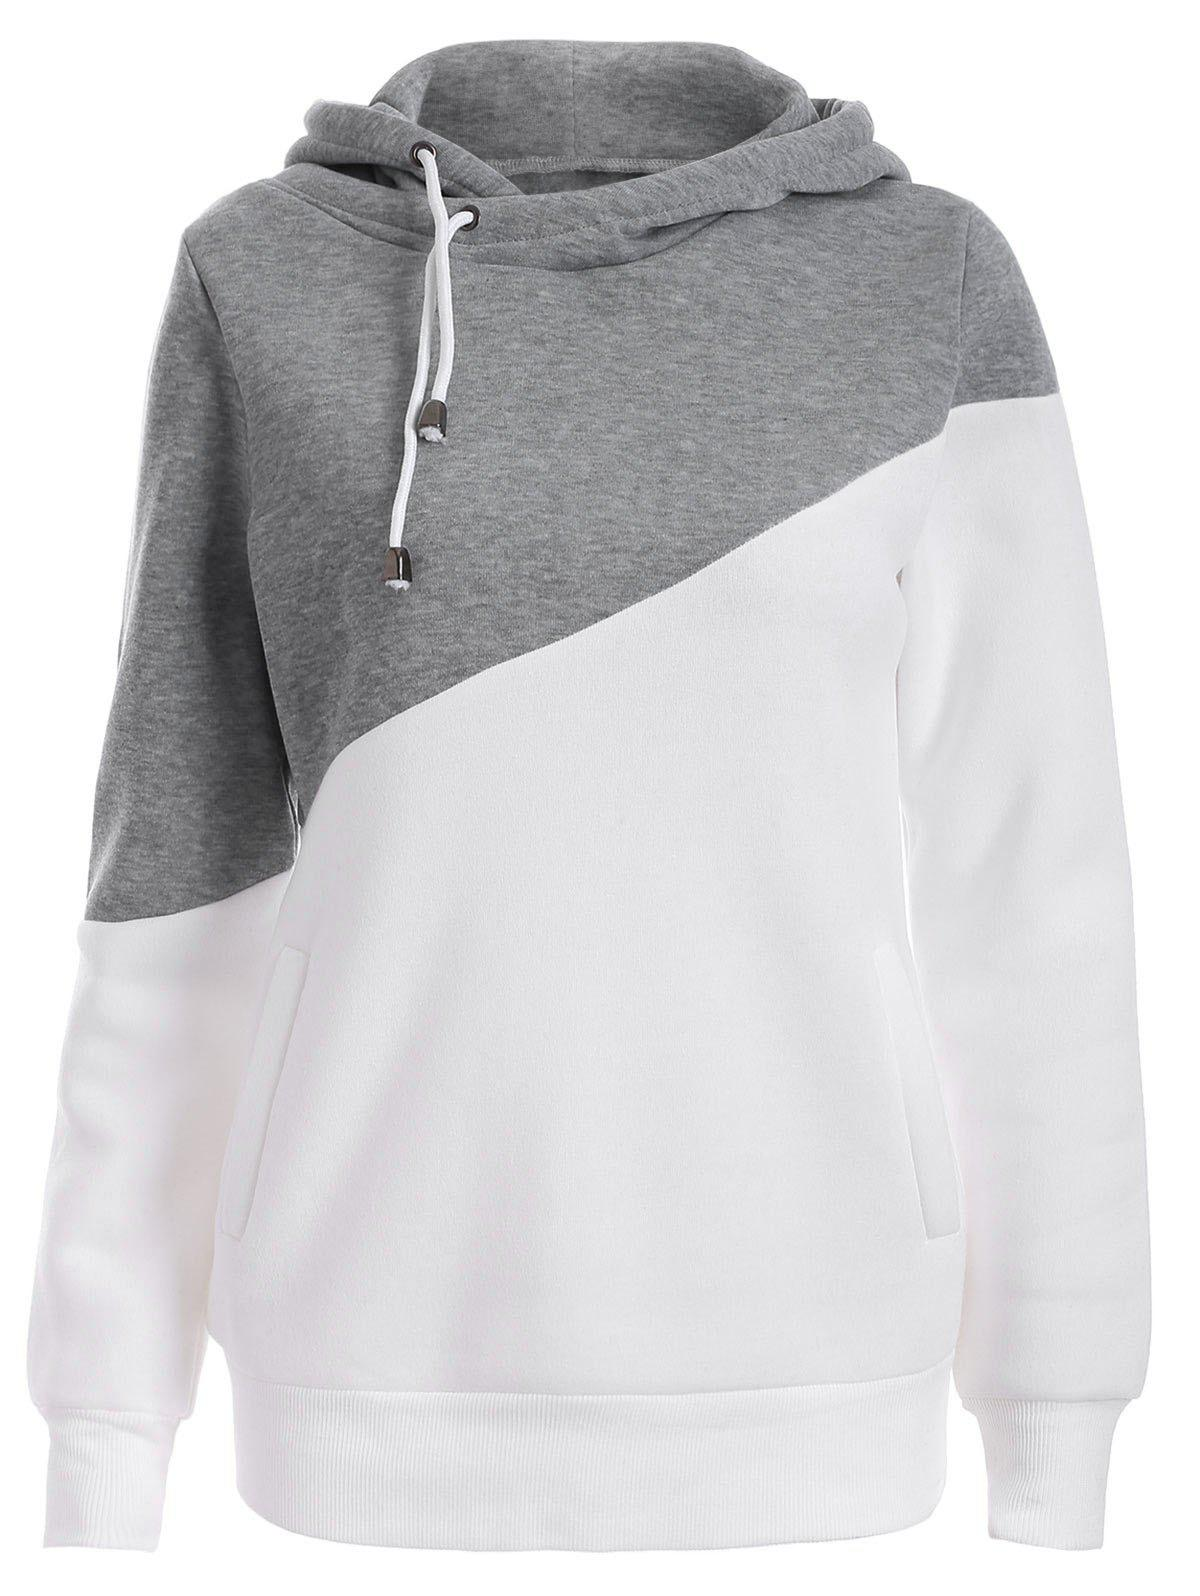 Pullover Drawstring Color Block HoodieWOMEN<br><br>Size: 2XL; Color: GRAY; Material: Polyester; Shirt Length: Regular; Sleeve Length: Full; Style: Casual; Pattern Style: Solid; Season: Fall,Spring; Weight: 0.420kg; Package Contents: 1 x Hoodie;